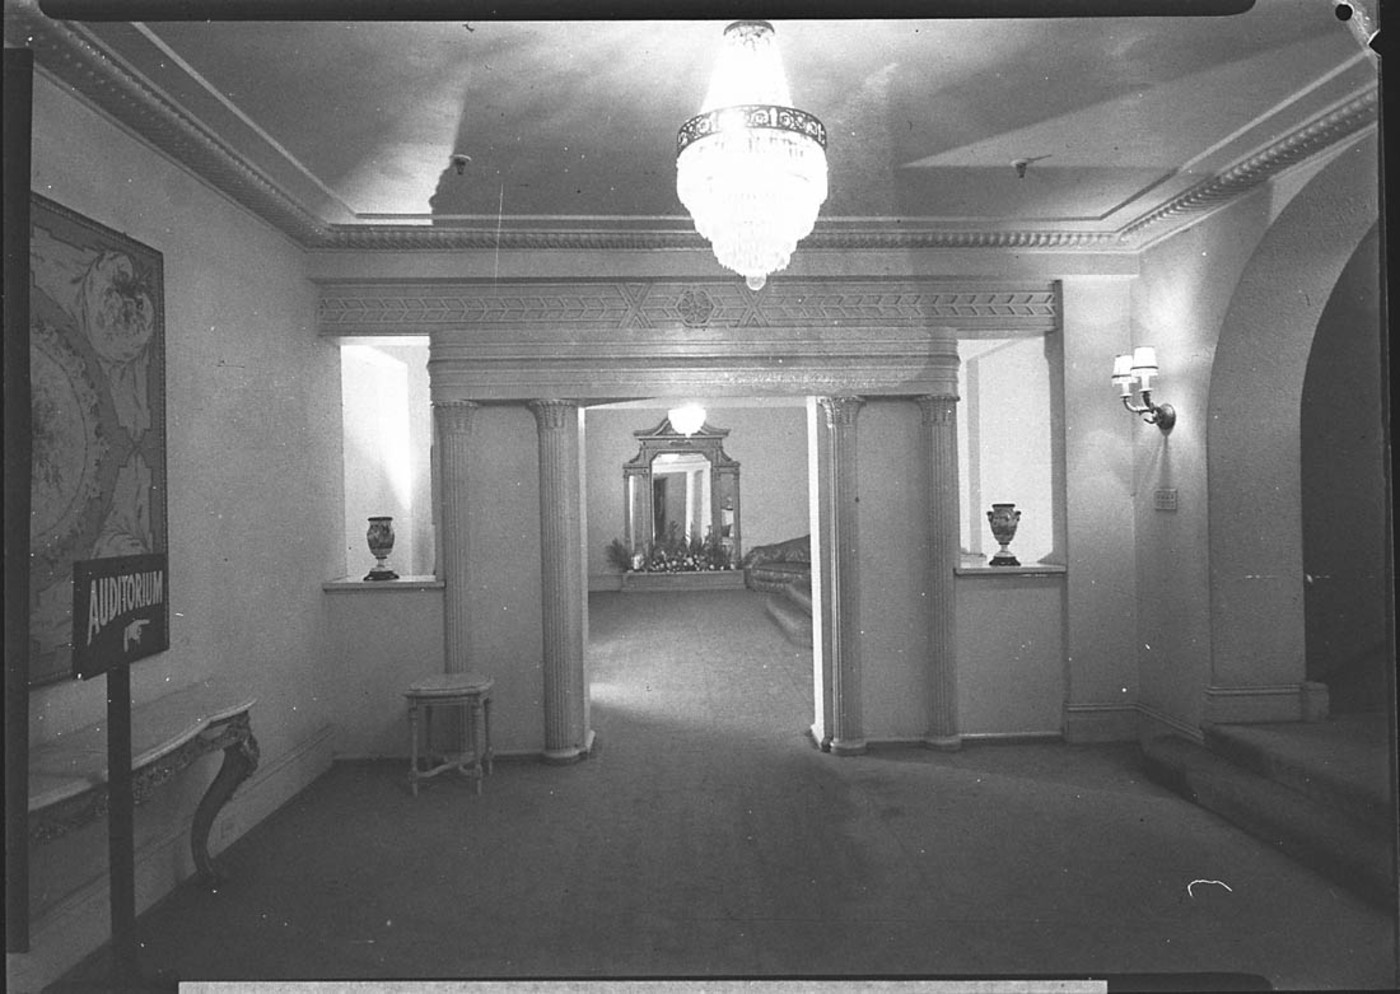 Office Entrance Foyer : File slnsw the entrance foyer uws new radio theatre